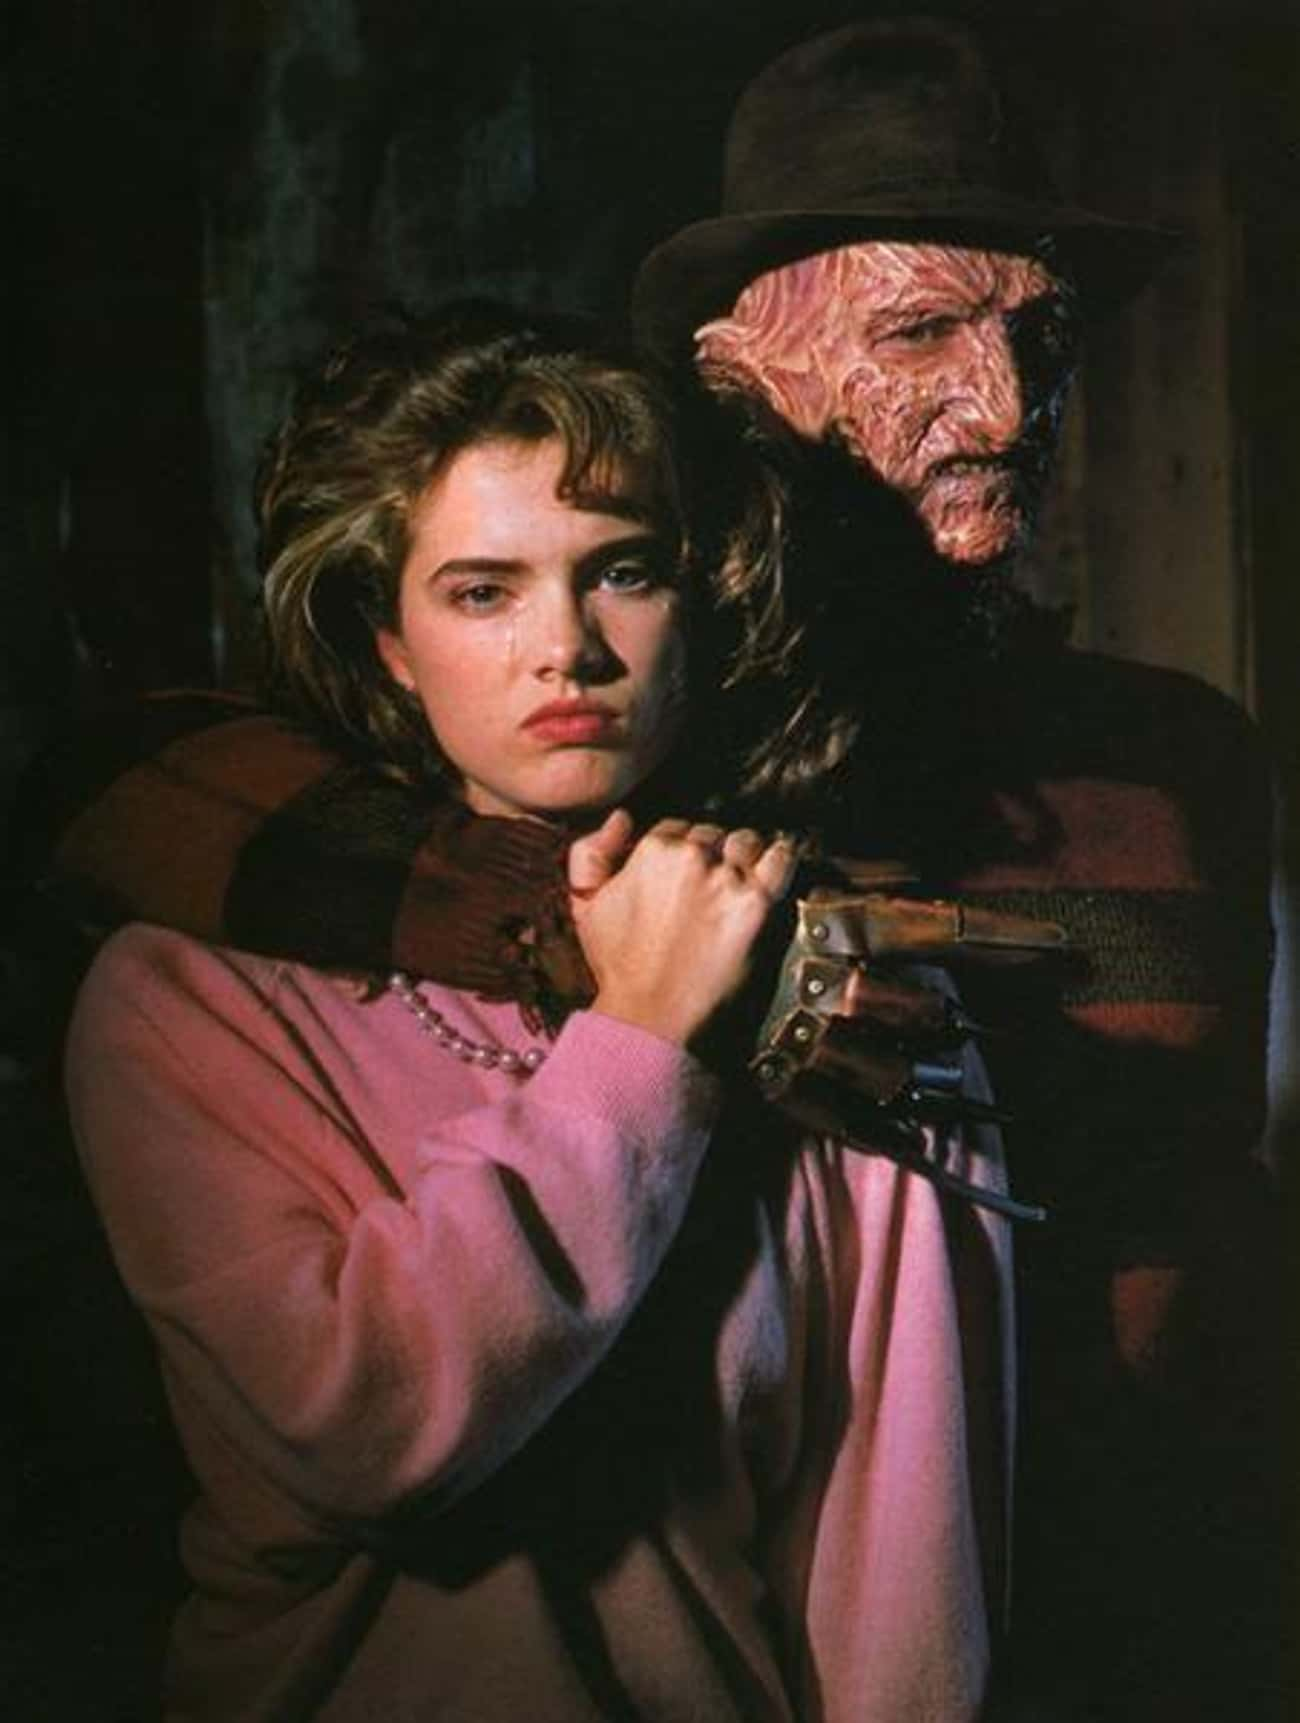 A Nightmare On Elm Street - Na is listed (or ranked) 4 on the list 20 Most Essential Female-Led Horror Films